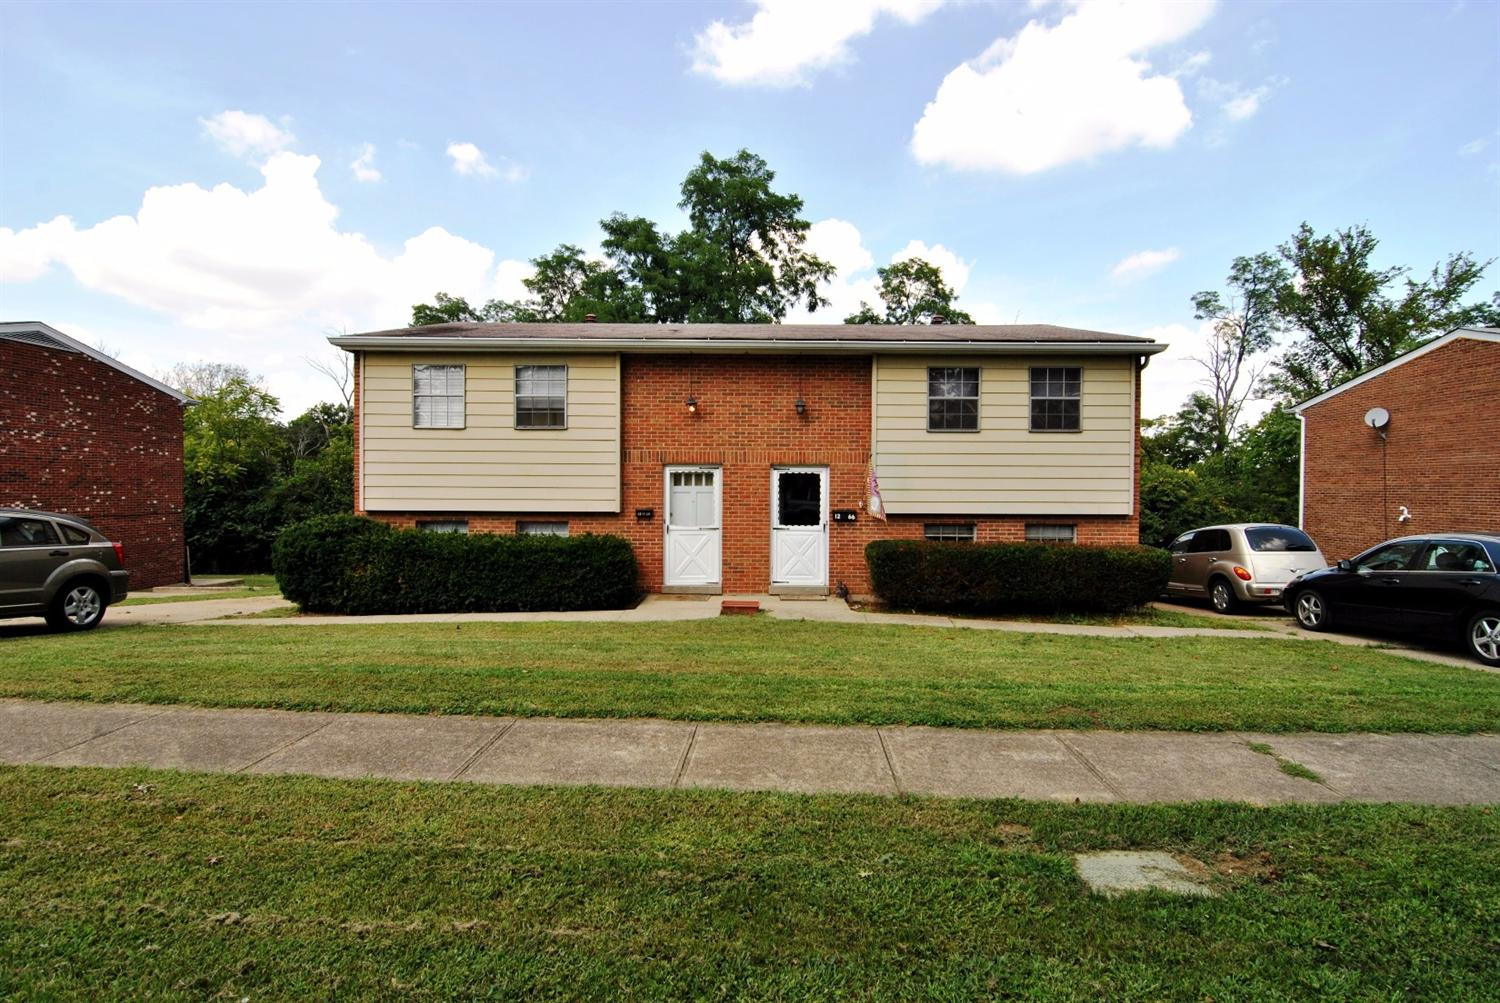 Rental Homes for Rent, ListingId:36564571, location: 1266 Upland Avenue Ft Wright 41011